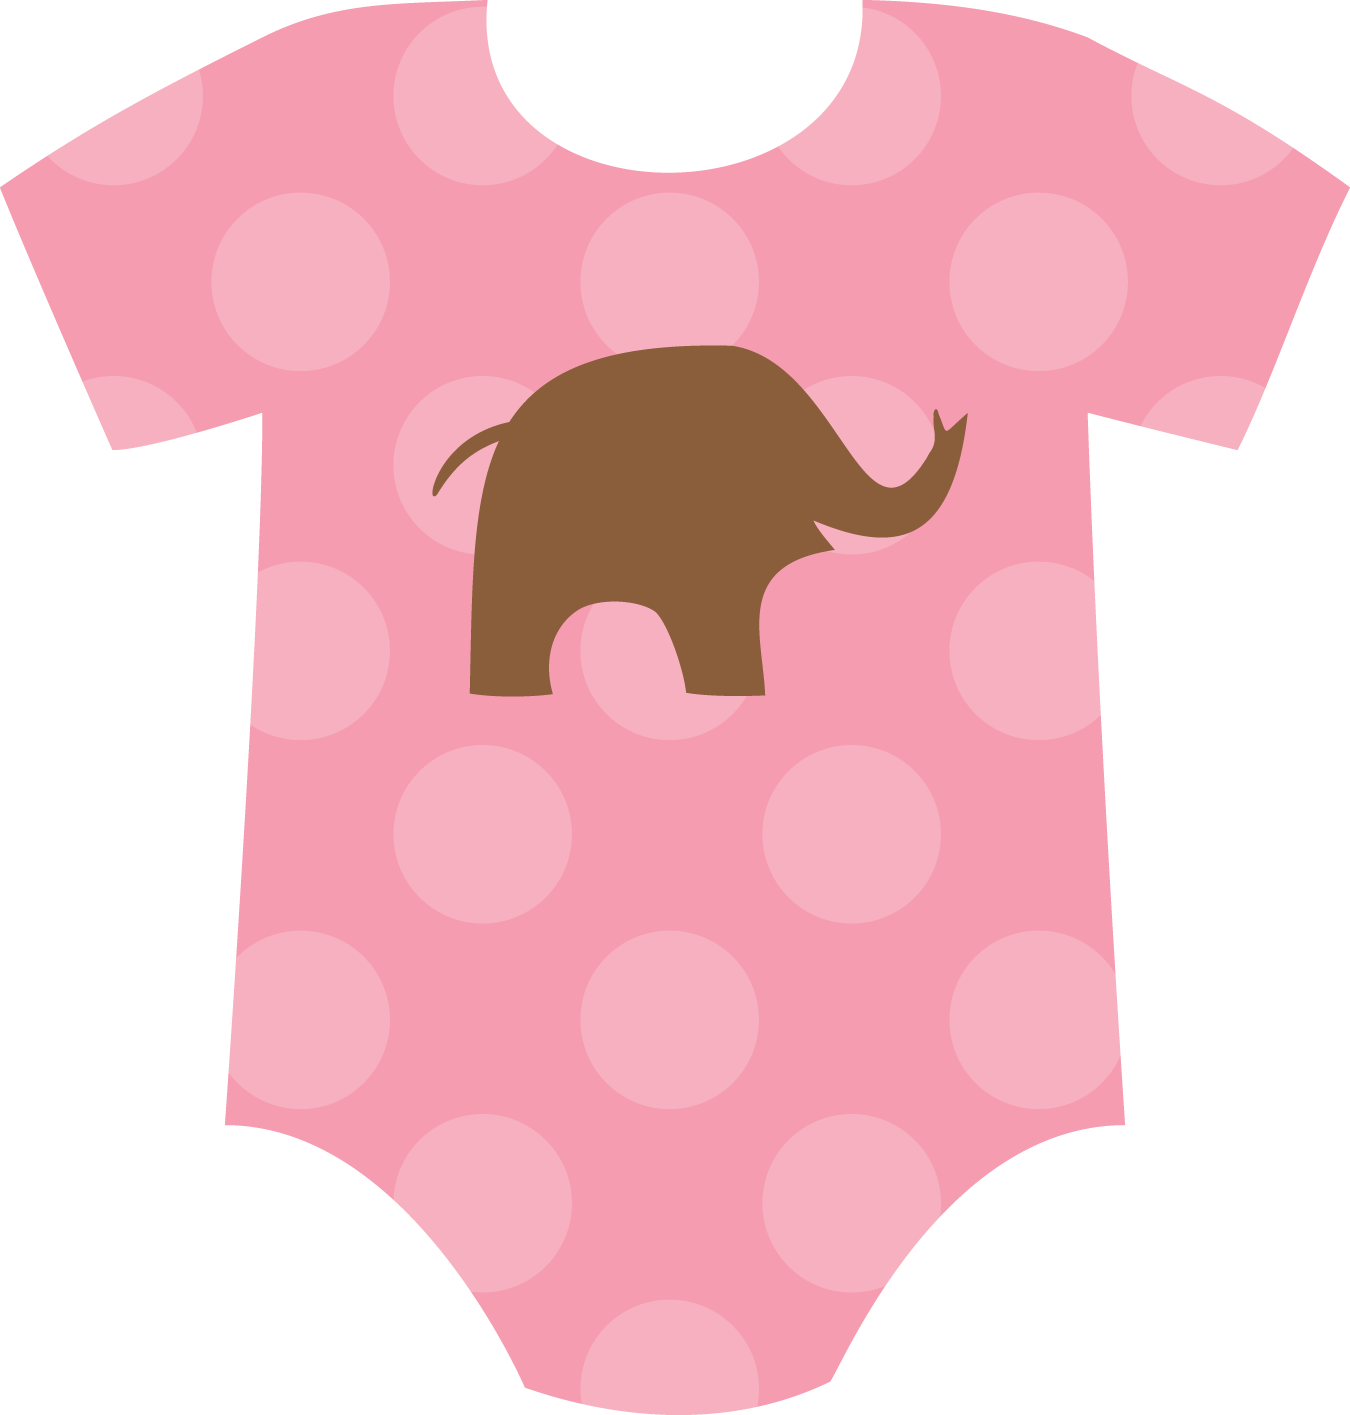 baby onesies clipart she s crafty pinterest onesie onesies rh pinterest com baby onesie clipart free clipart baby onesie